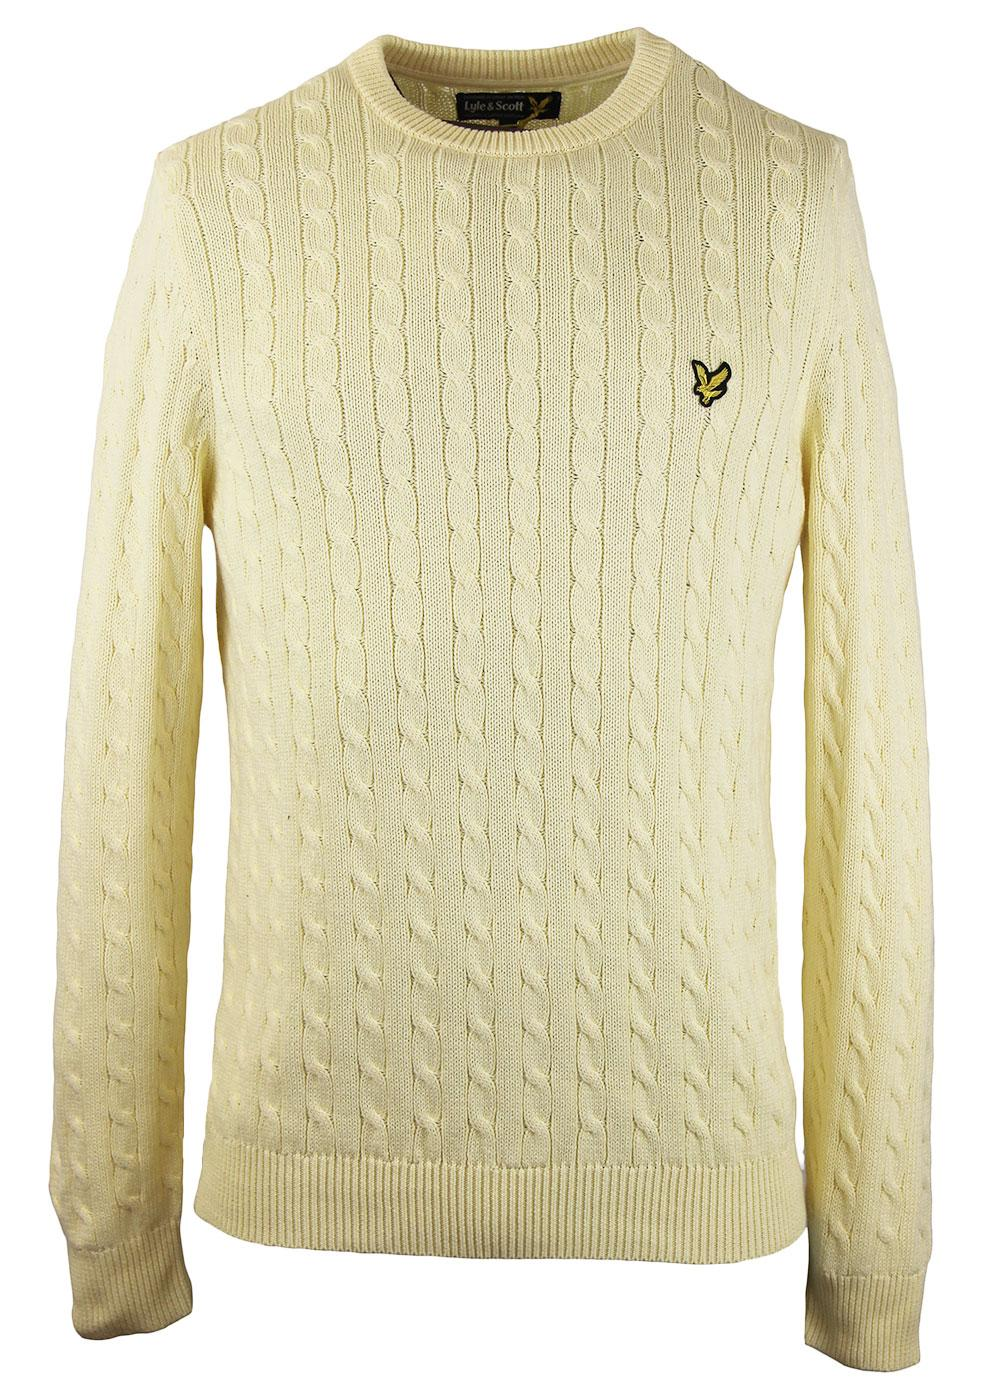 LYLE & SCOTT Classic Retro Mod Cable Knit Jumper